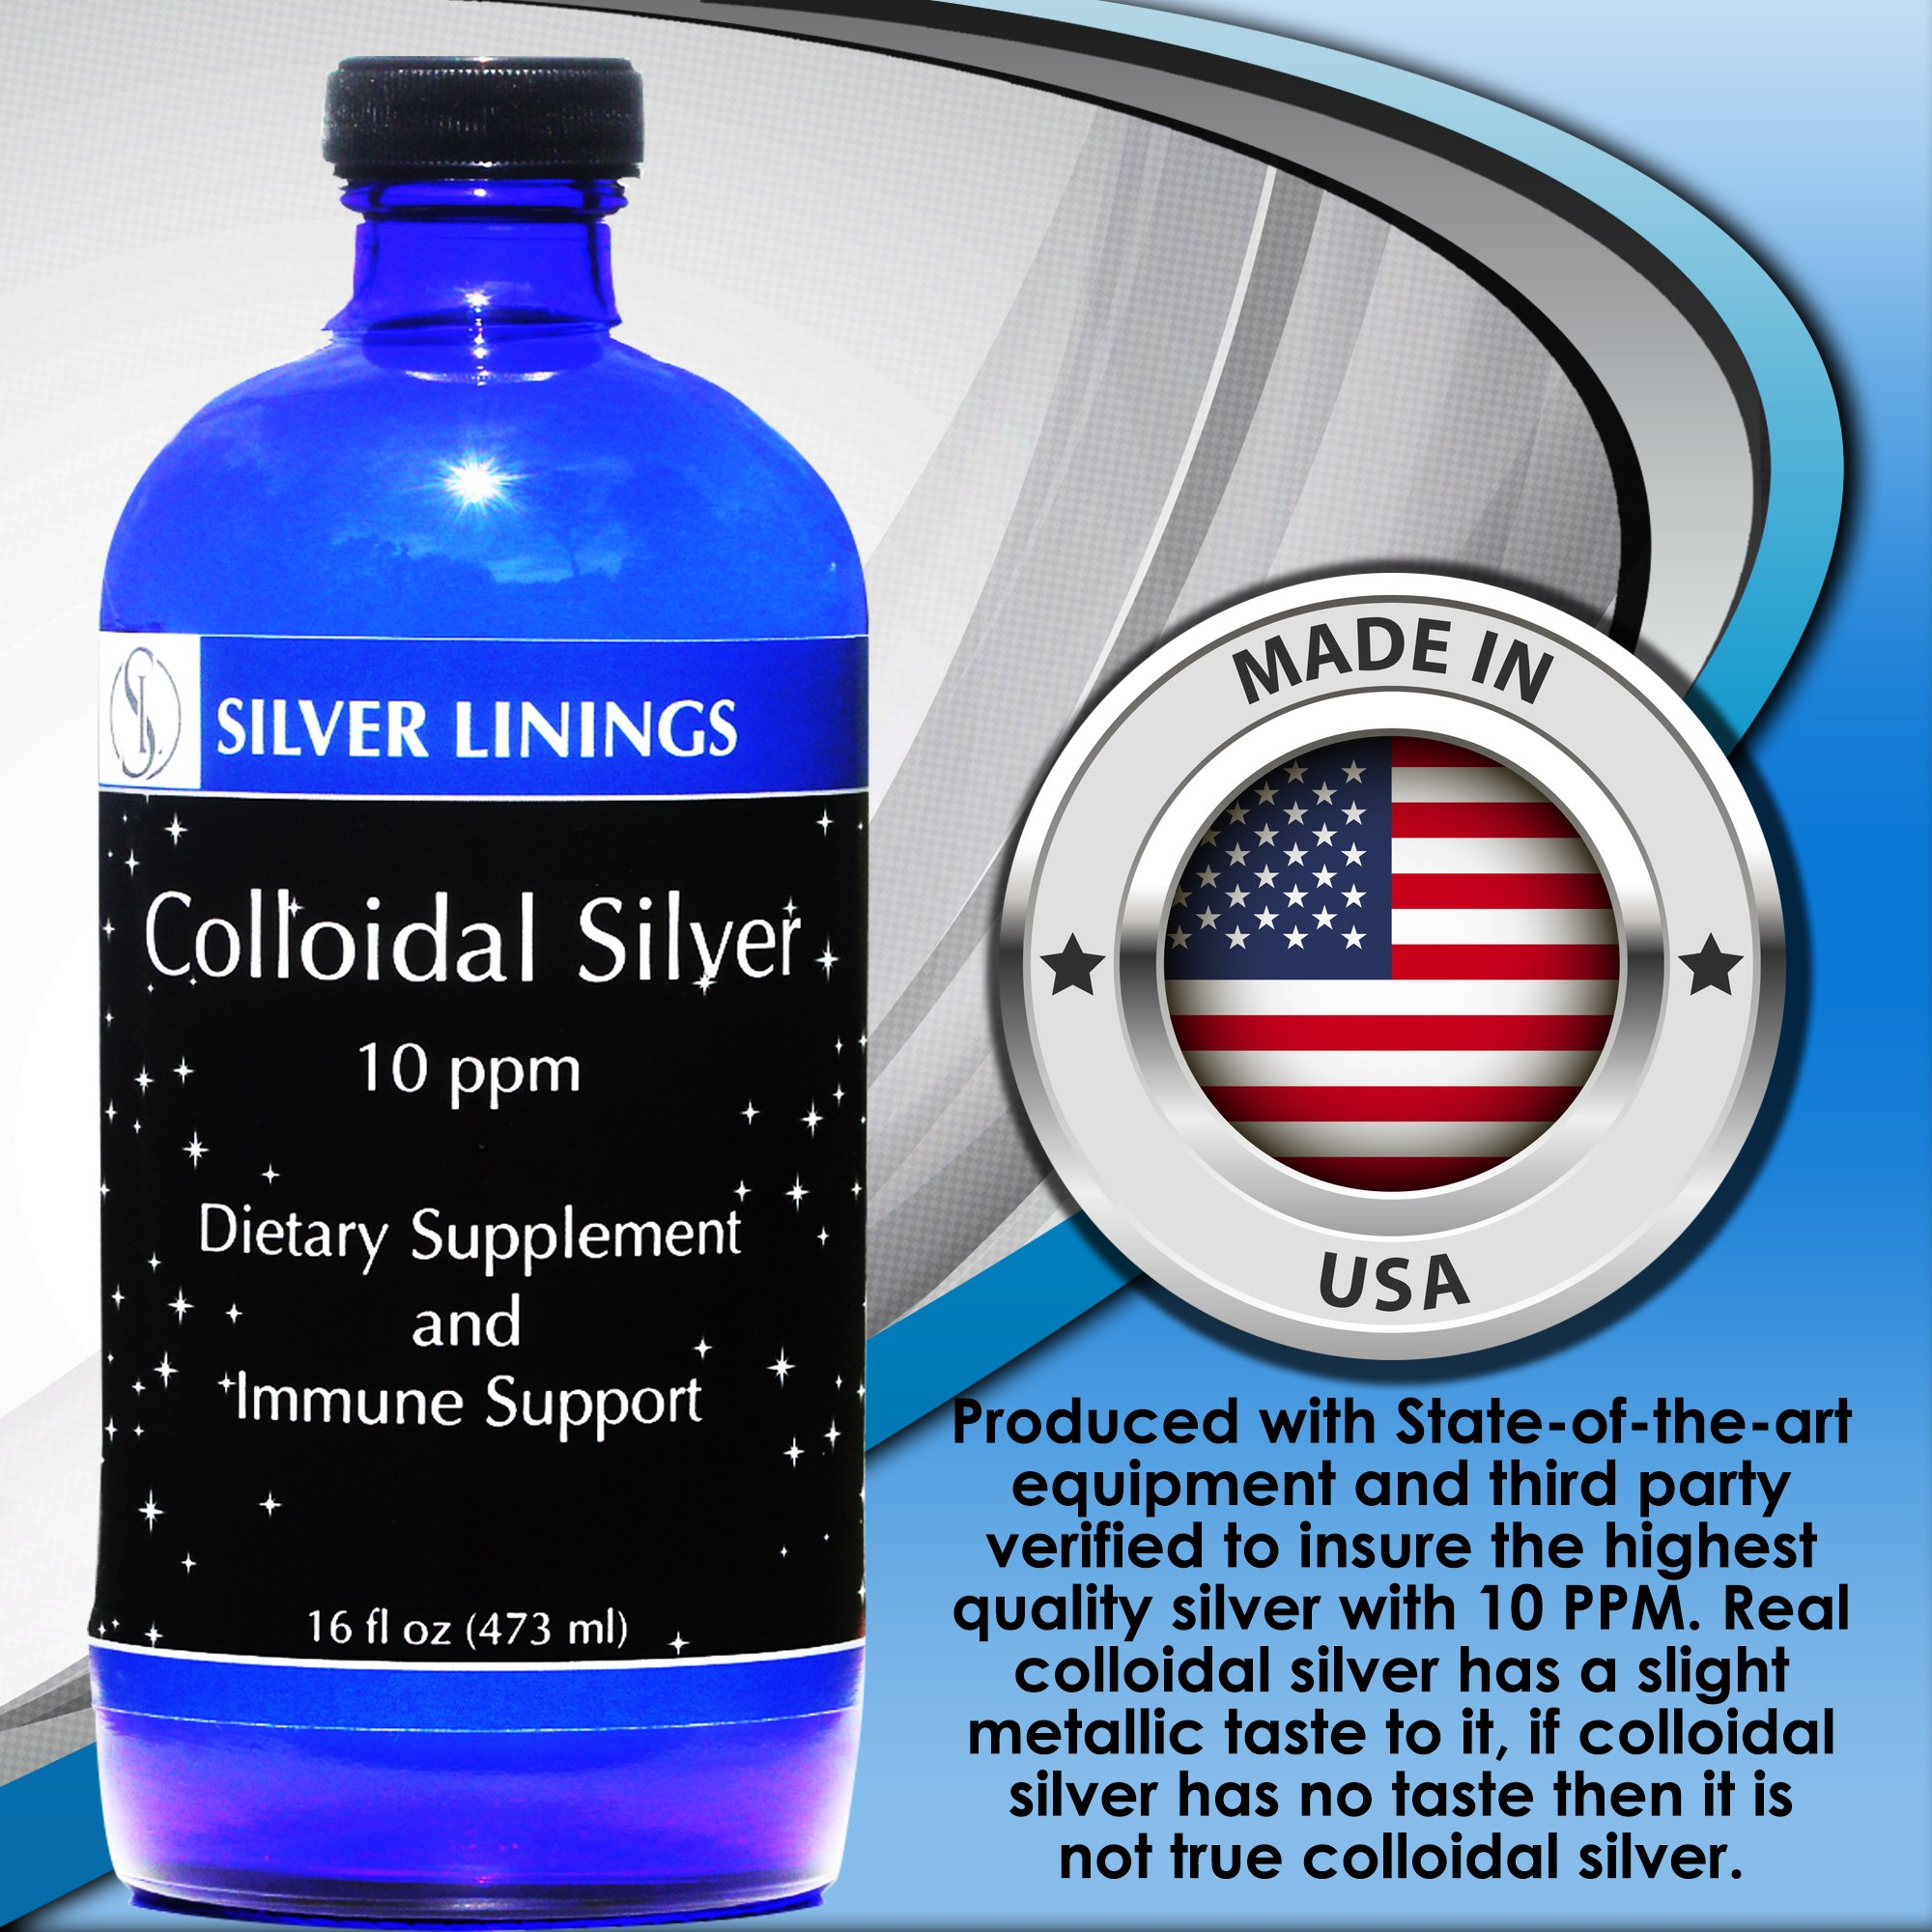 Silver Linings Colloidal Silver Hydrosol, 10 PPM, A Powerful Natural Antibiotic, and Preventative Measure Against Infection, Immune Support, Safe for Adults, Kids, Pets, and Plants, 16 oz by Silver Linings (Image #6)